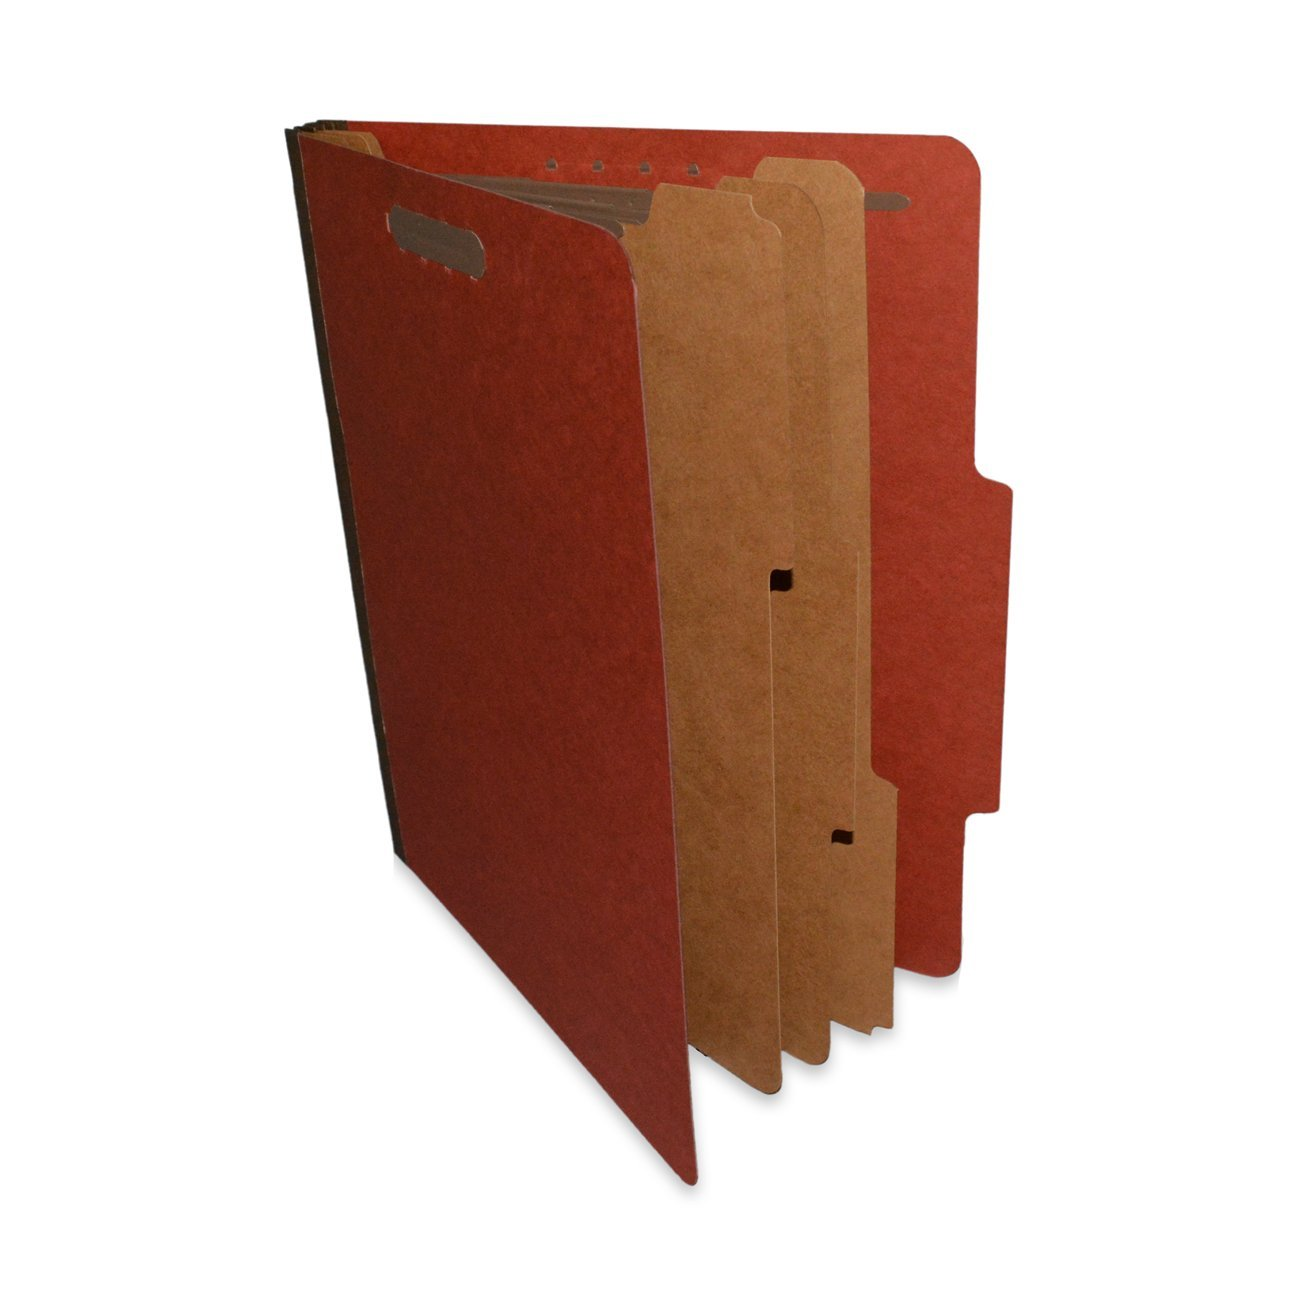 "ALL-STATE LEGAL Classification File Folder, 3 Dividers, 3"" Expansion, Letter Size, Executive Red, 10 per Box"